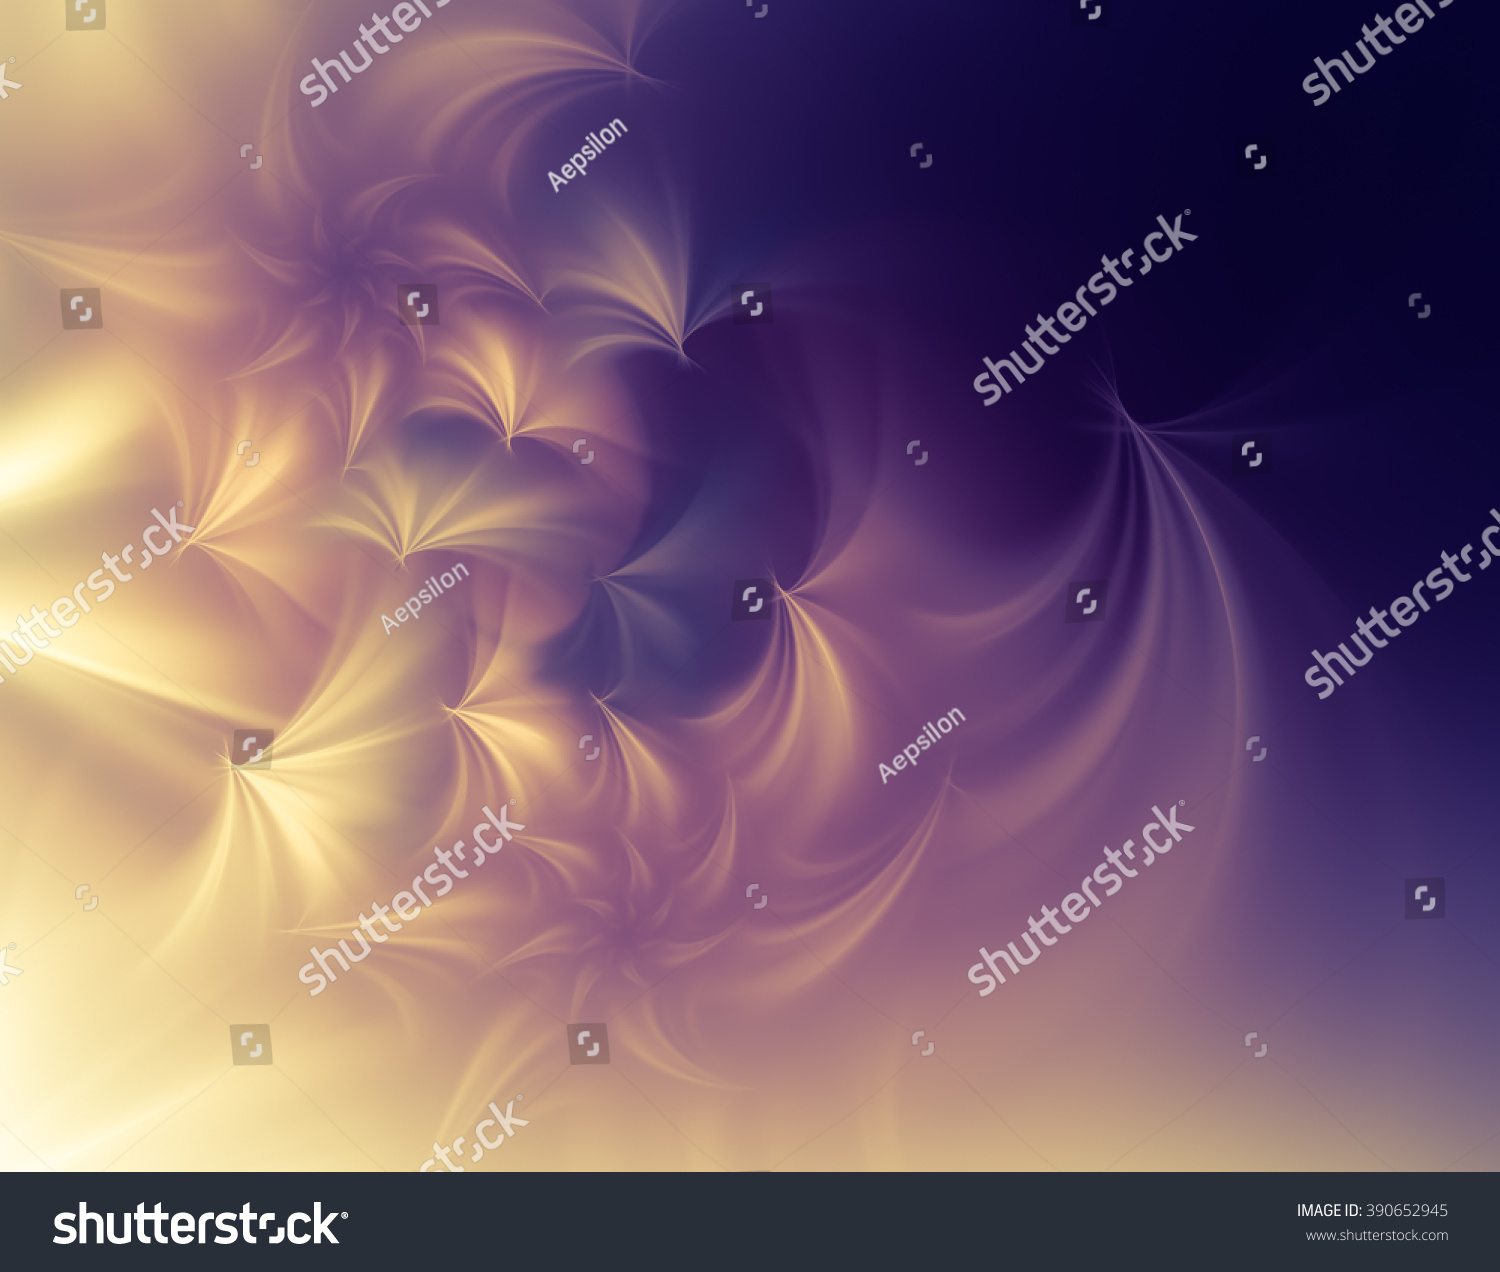 Pastel Abstract Background In Purple And Gold Tones Stock ...